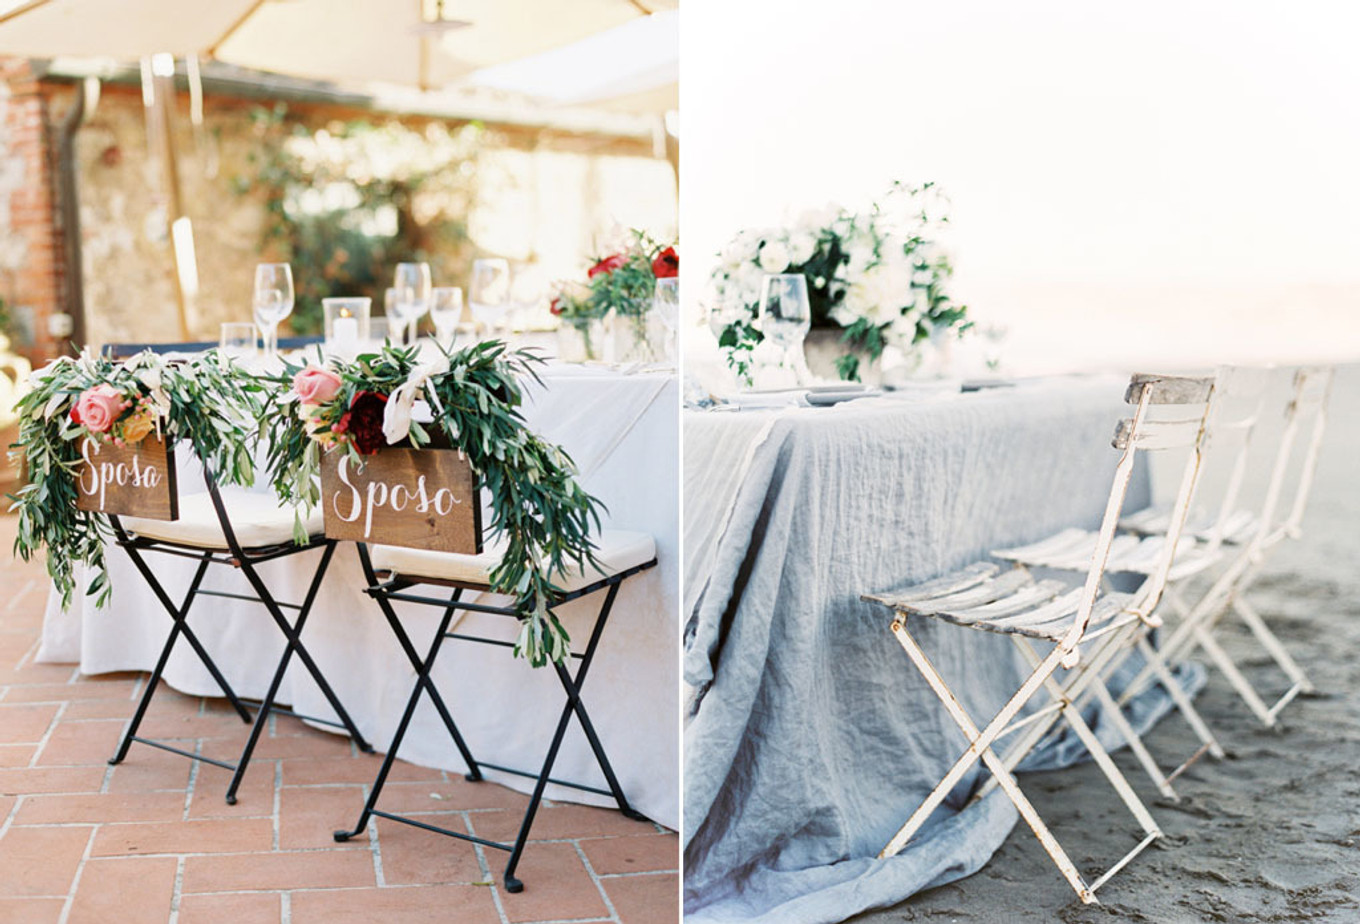 All You Need to Know About Wedding Decorations - Bridestory Blog